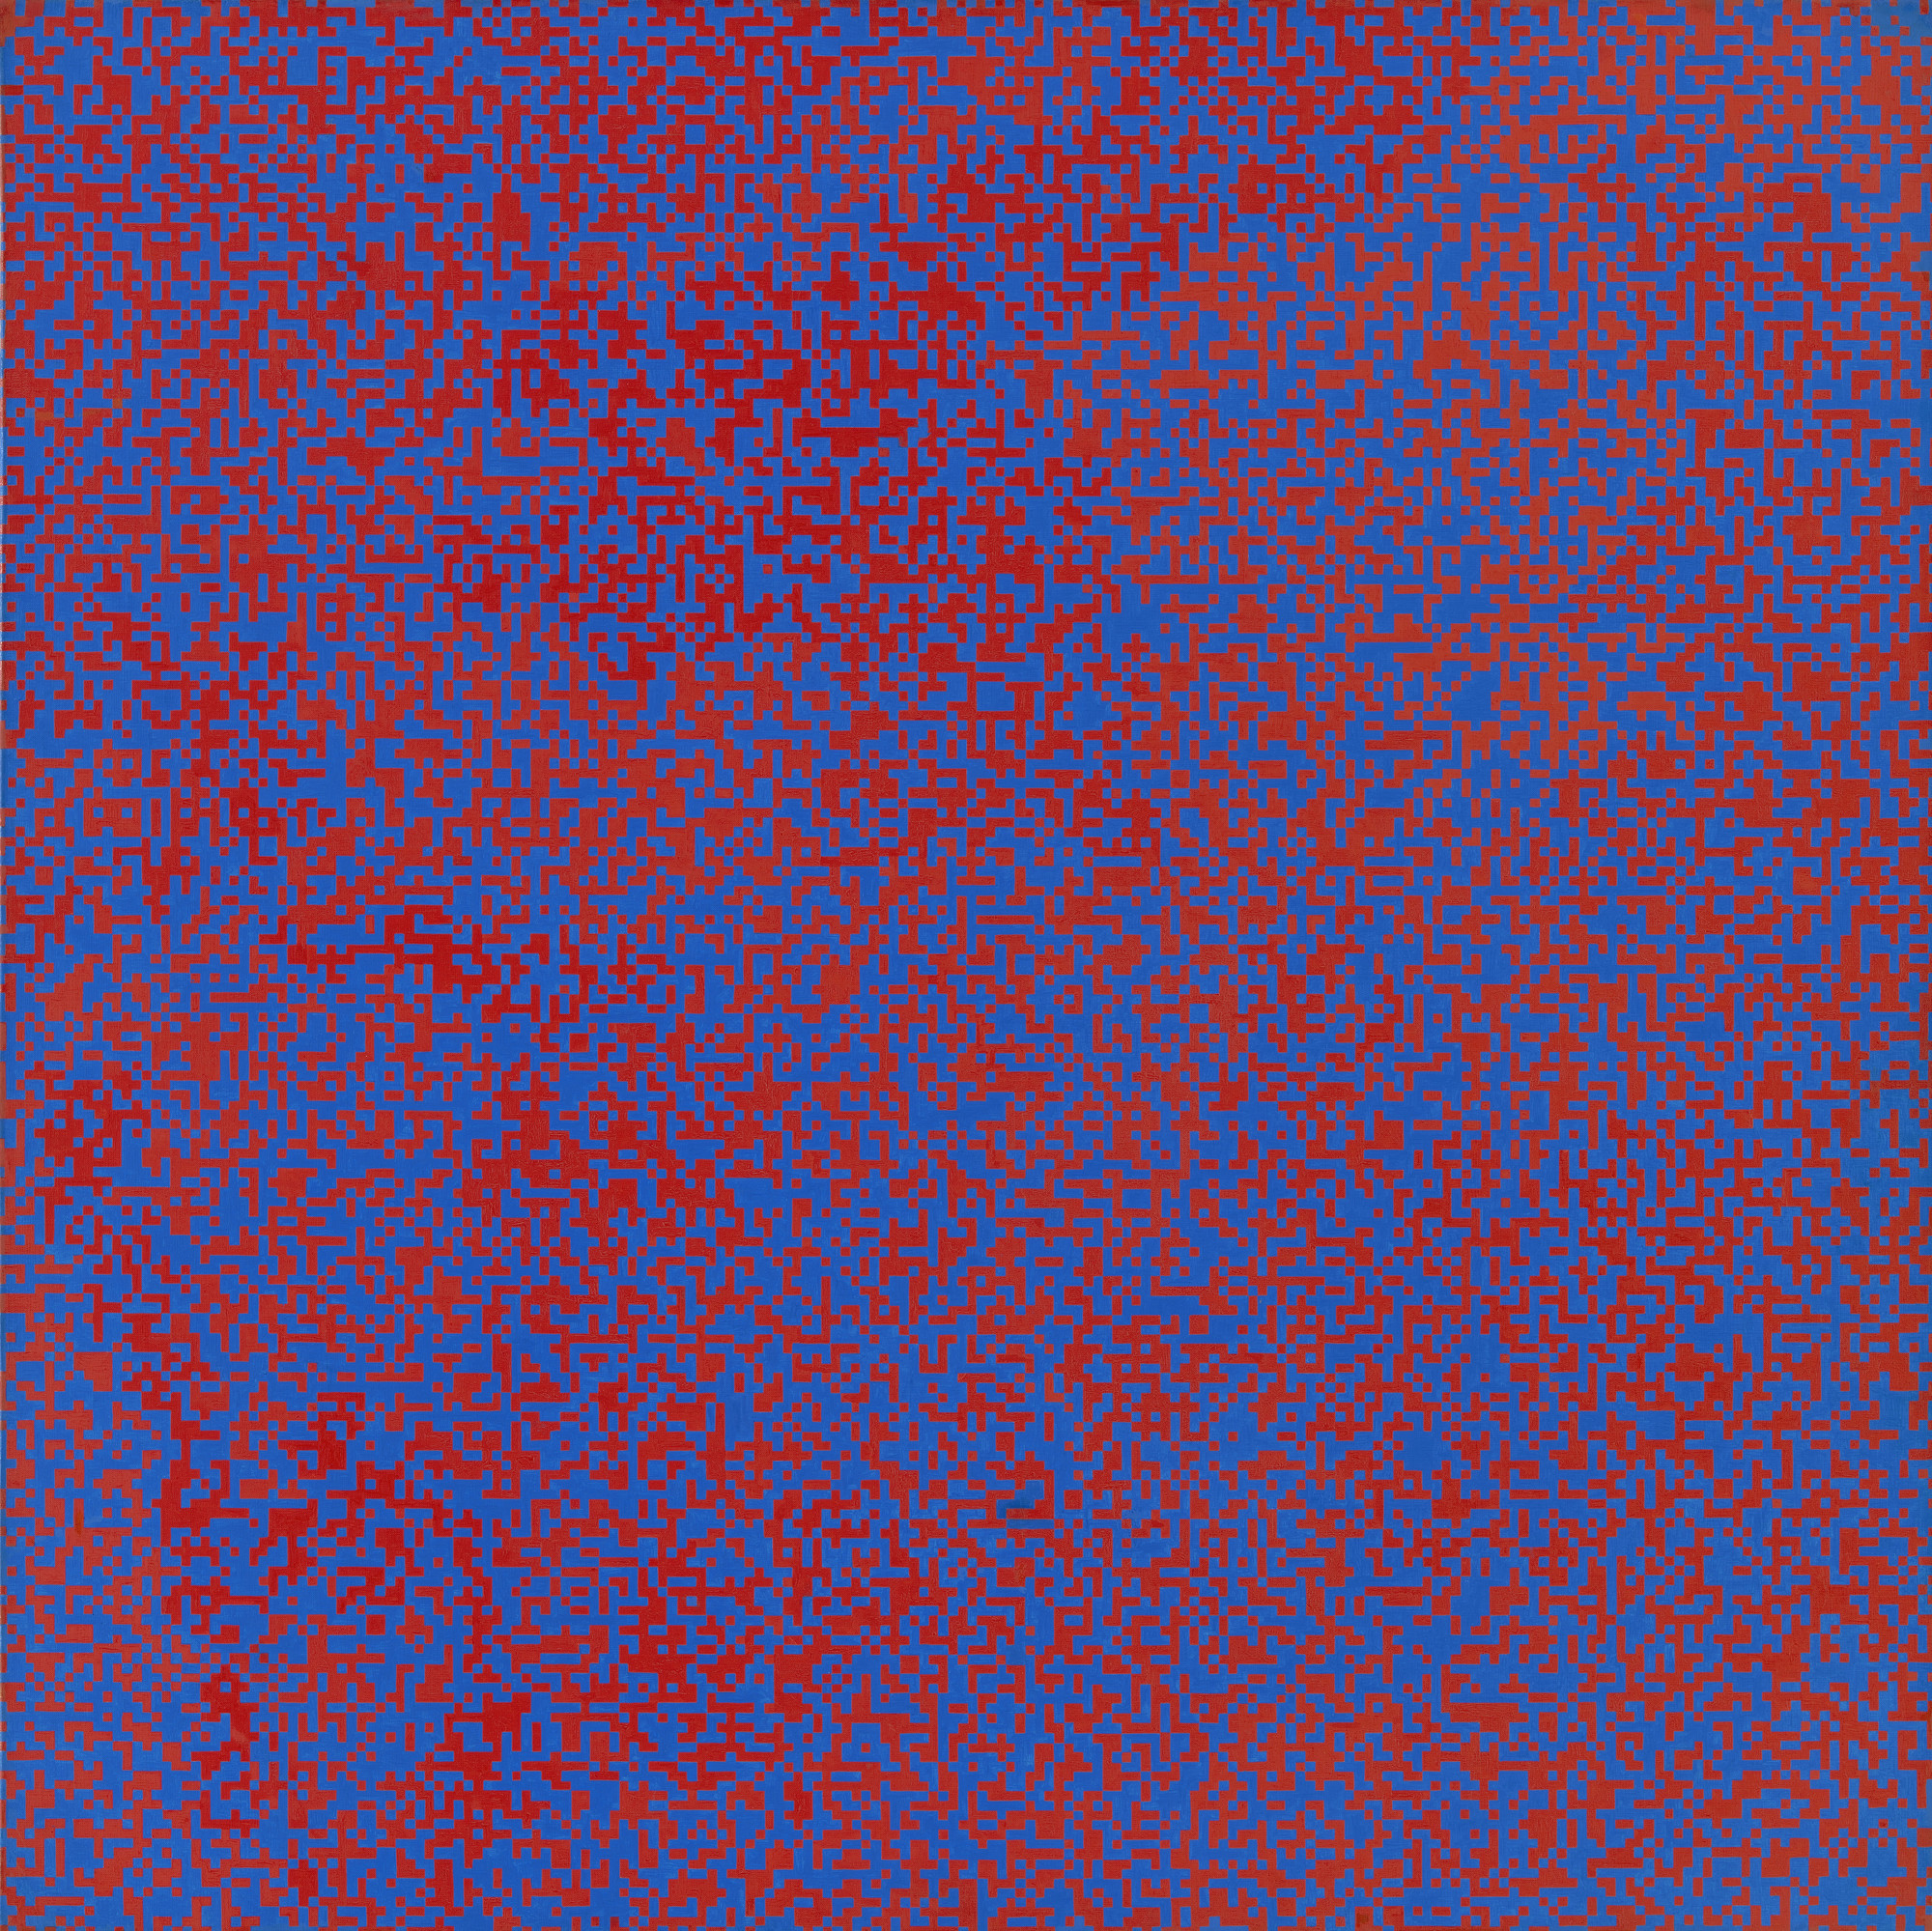 François Morellet. Random Distribution of 40,000 Squares Using the Odd and Even Numbers of a Telephone Directory, 50% Blue, 50% Red. 1960